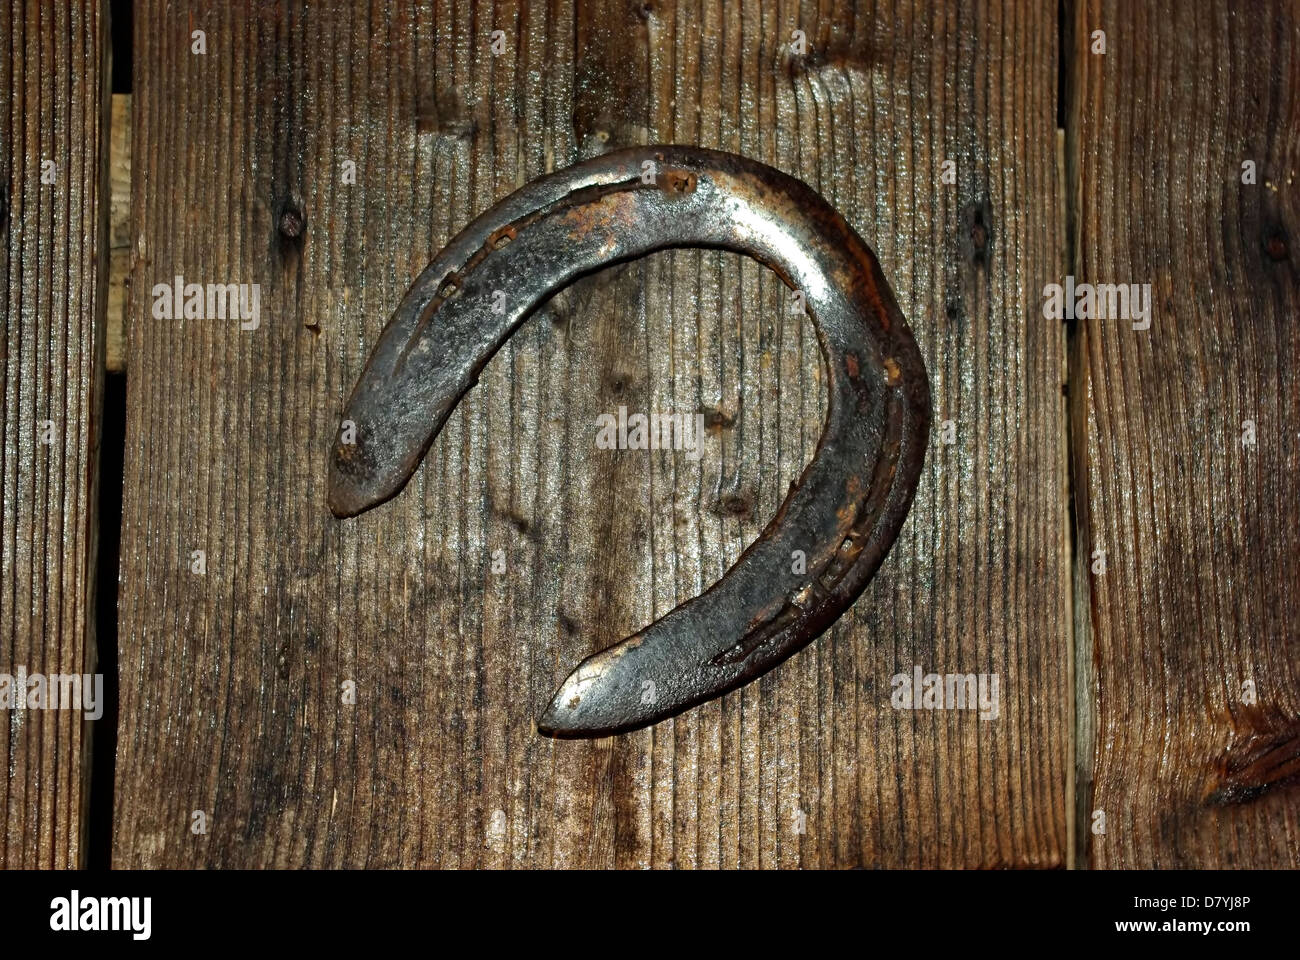 How to hang a horseshoe over the door so that it brings happiness